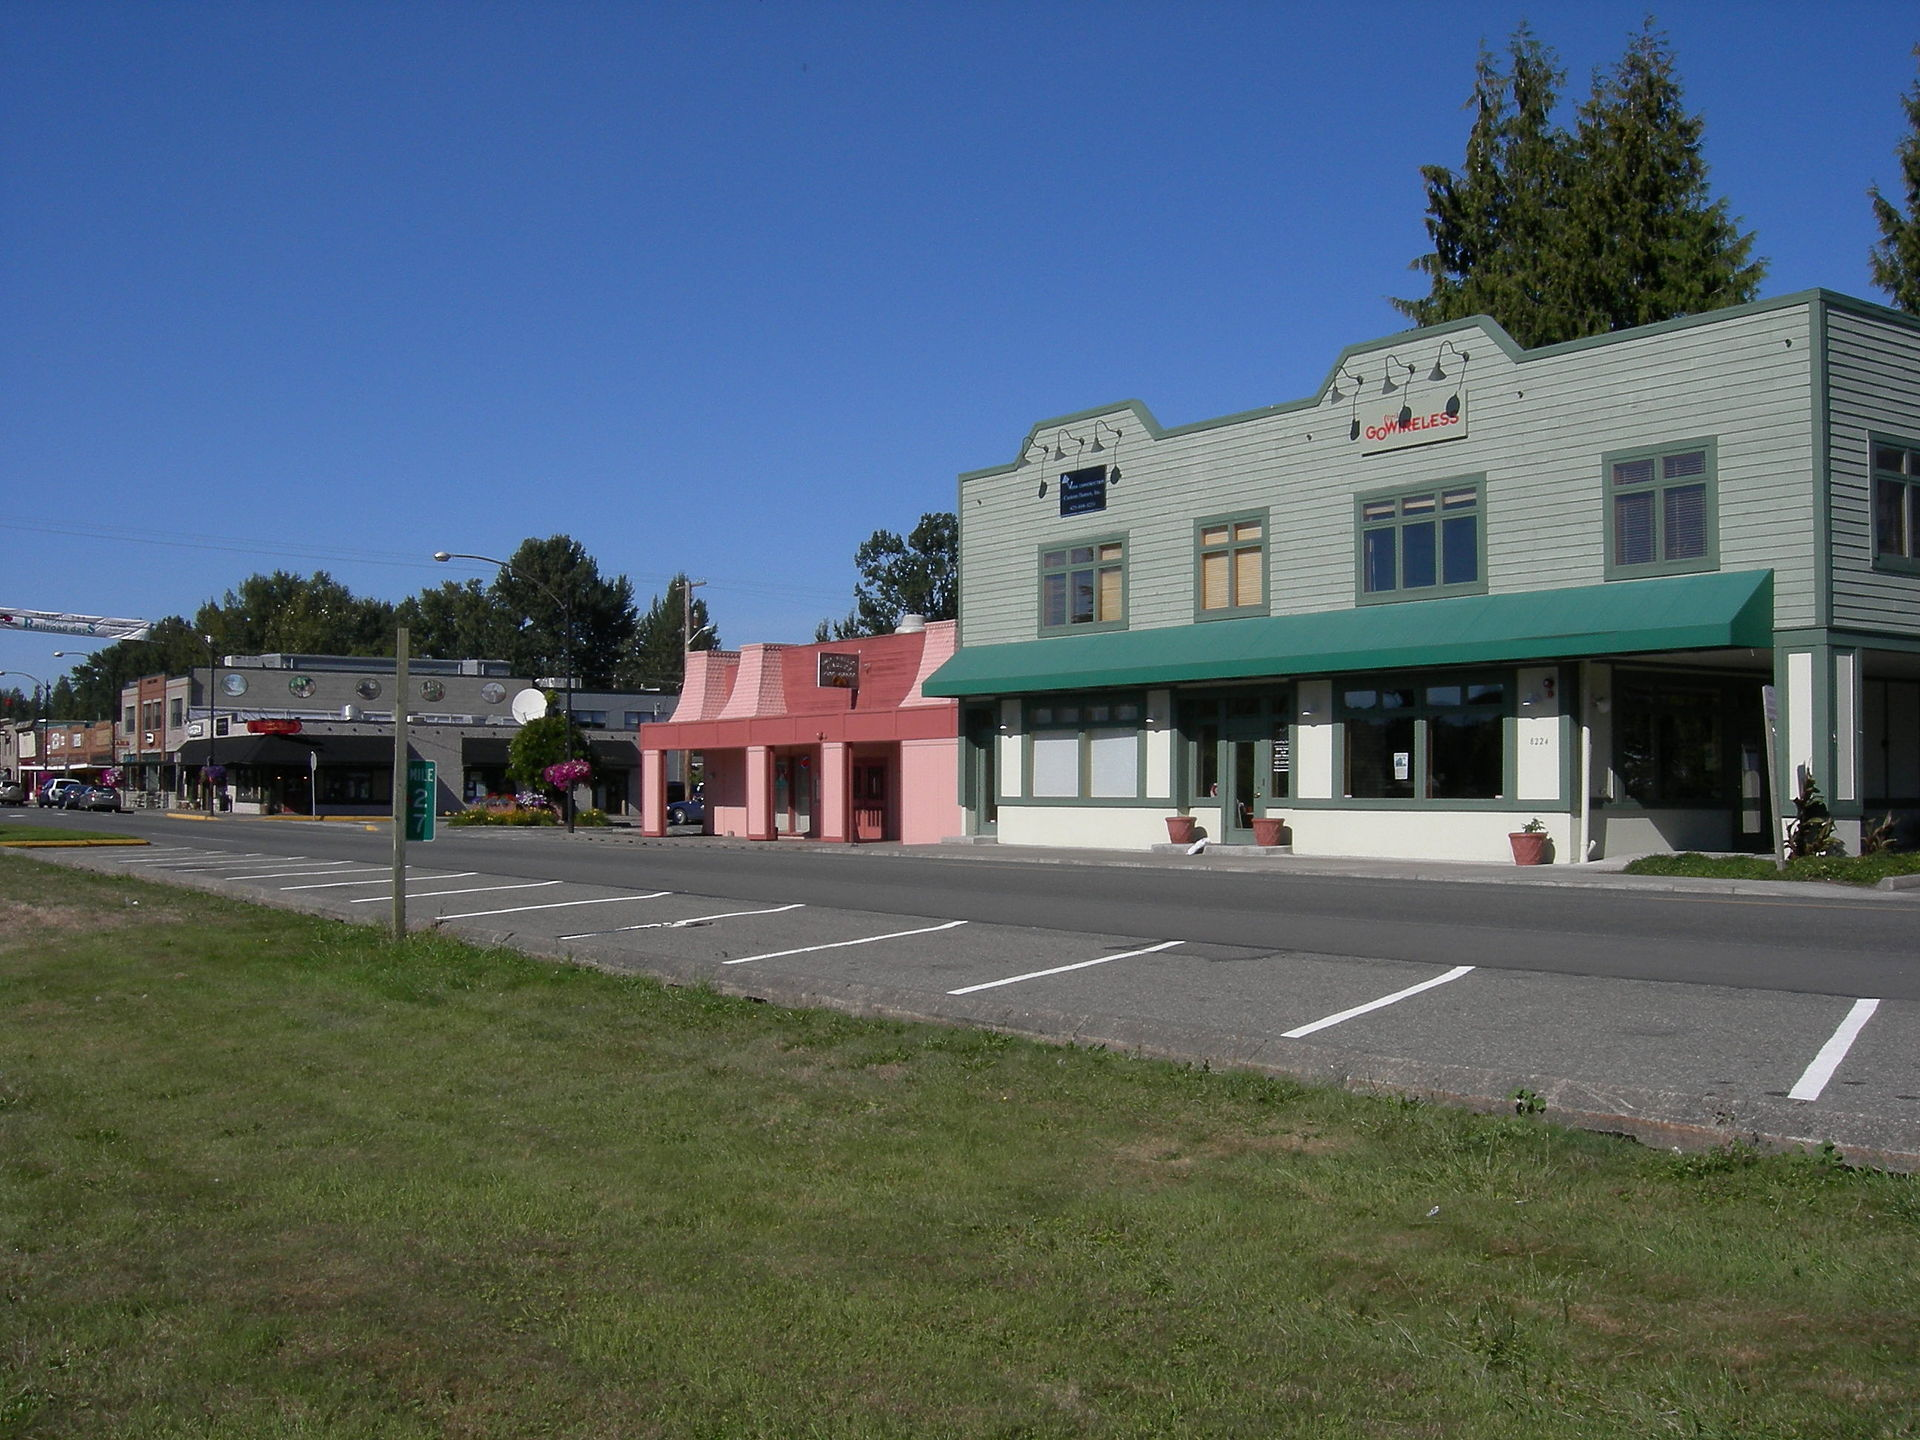 Downtown_Snoqualmie_WA_01